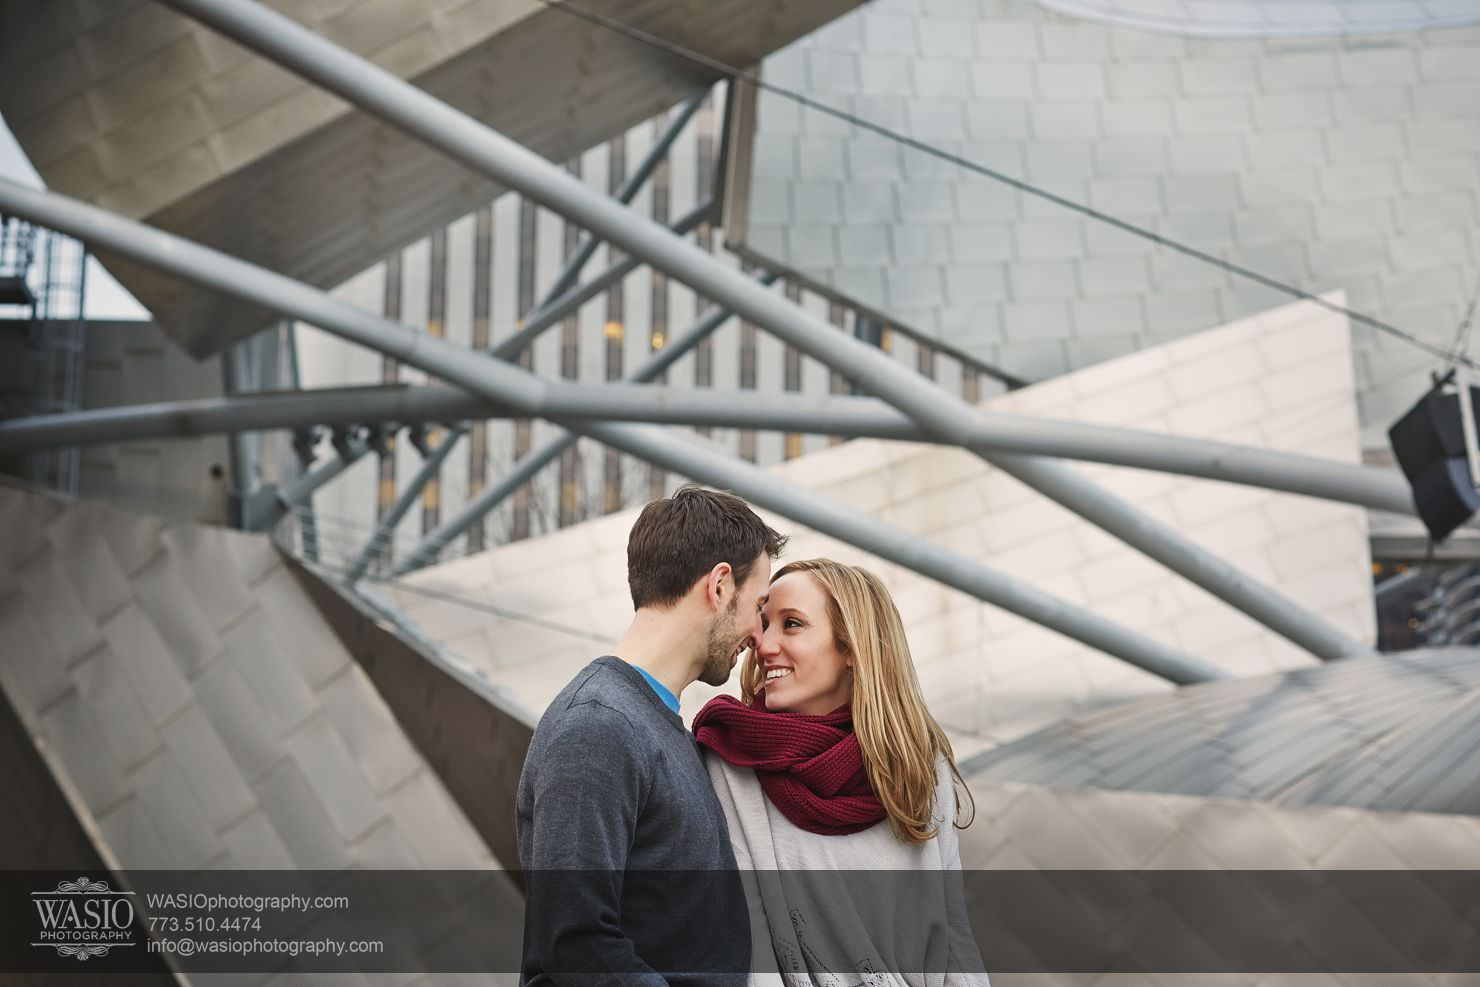 013_Chicago-Winter-Engagement_Courtney-Danny Chicago Winter Engagement - Courtney + Danny